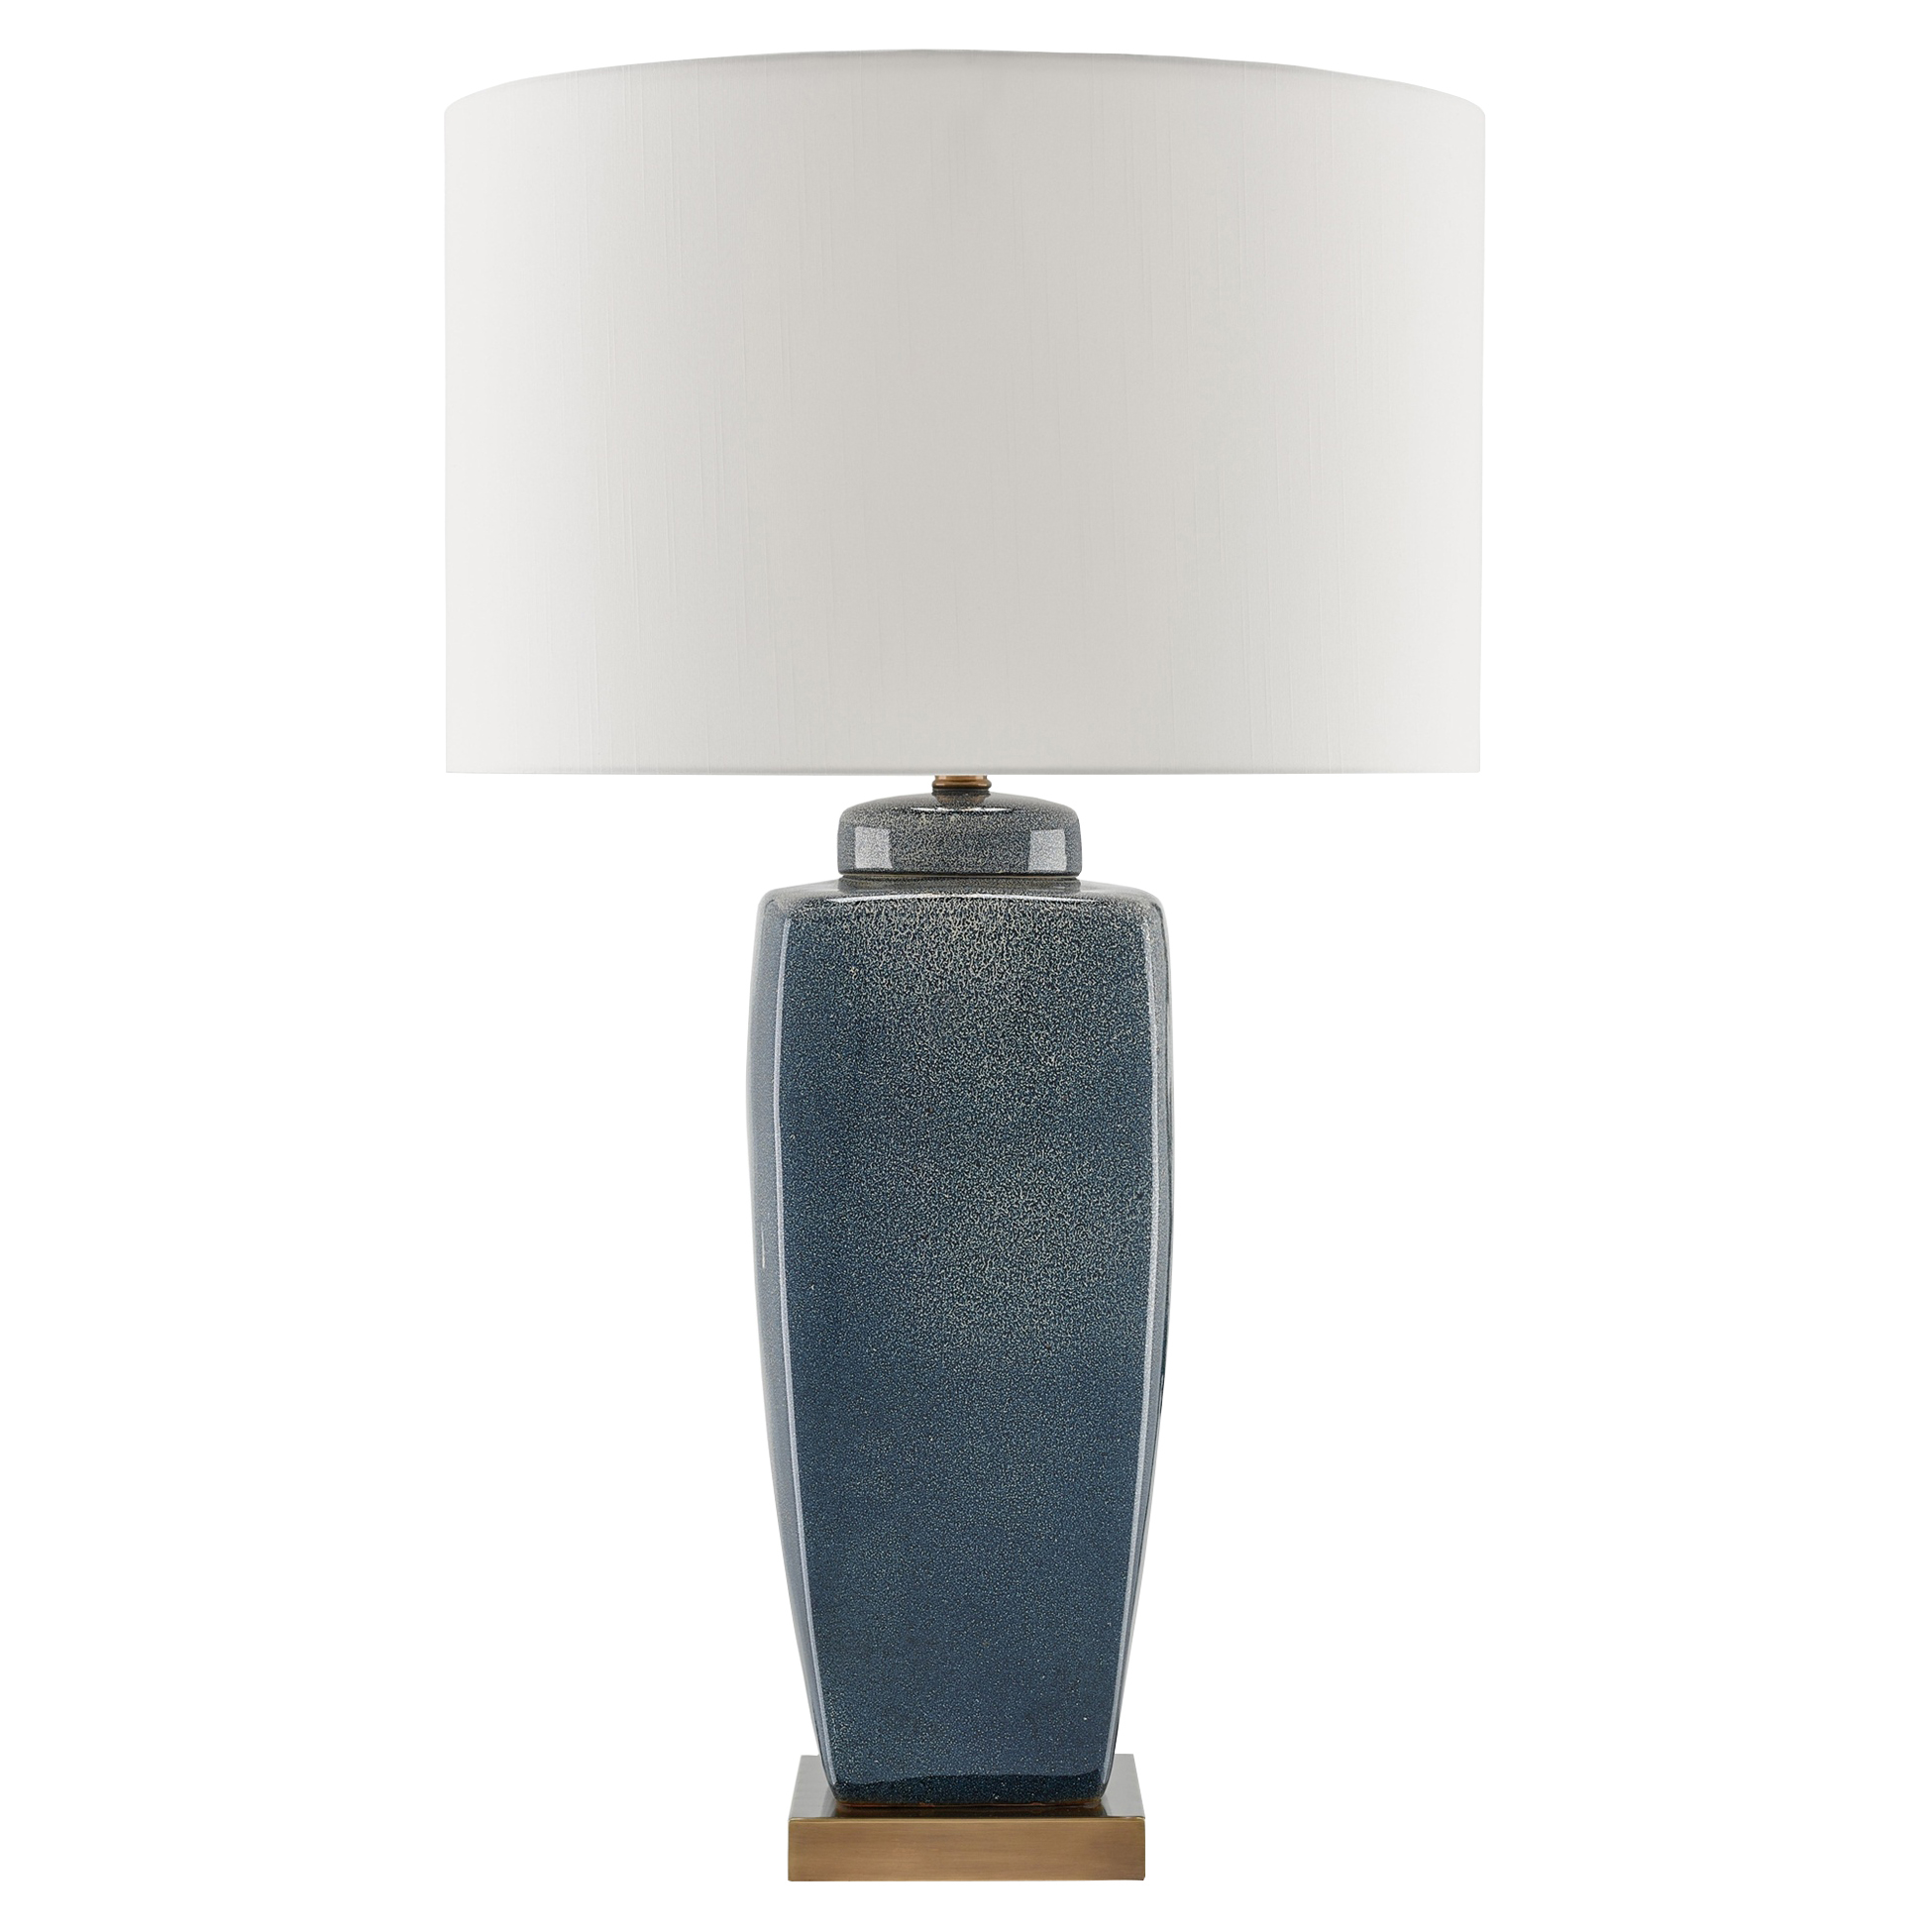 Briony Coastal Beach Speckled Blue Ceramic Tea Jar Table Lamp